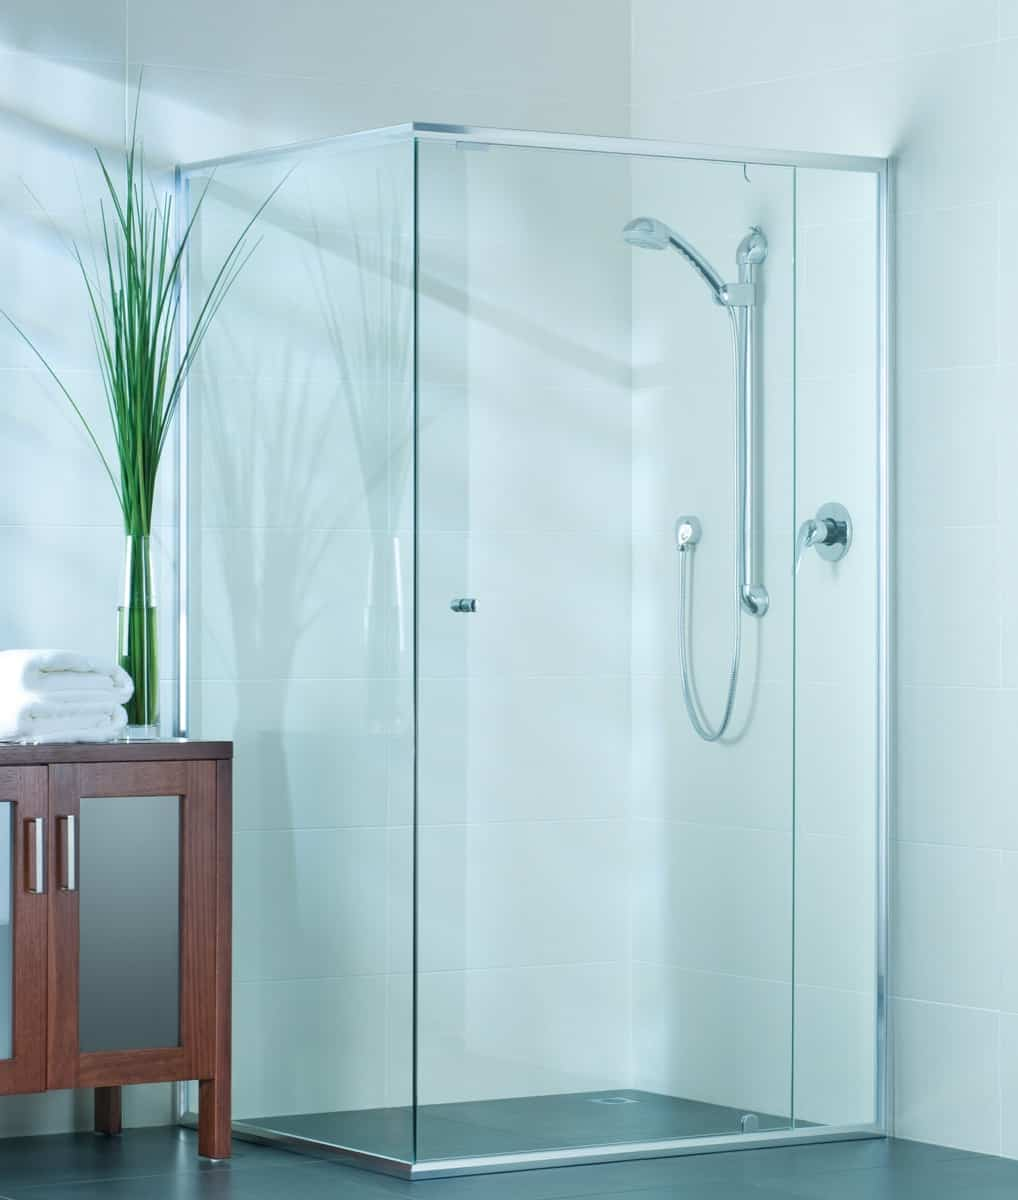 Precision Shower Screens Bathroom semi-framed shower screen